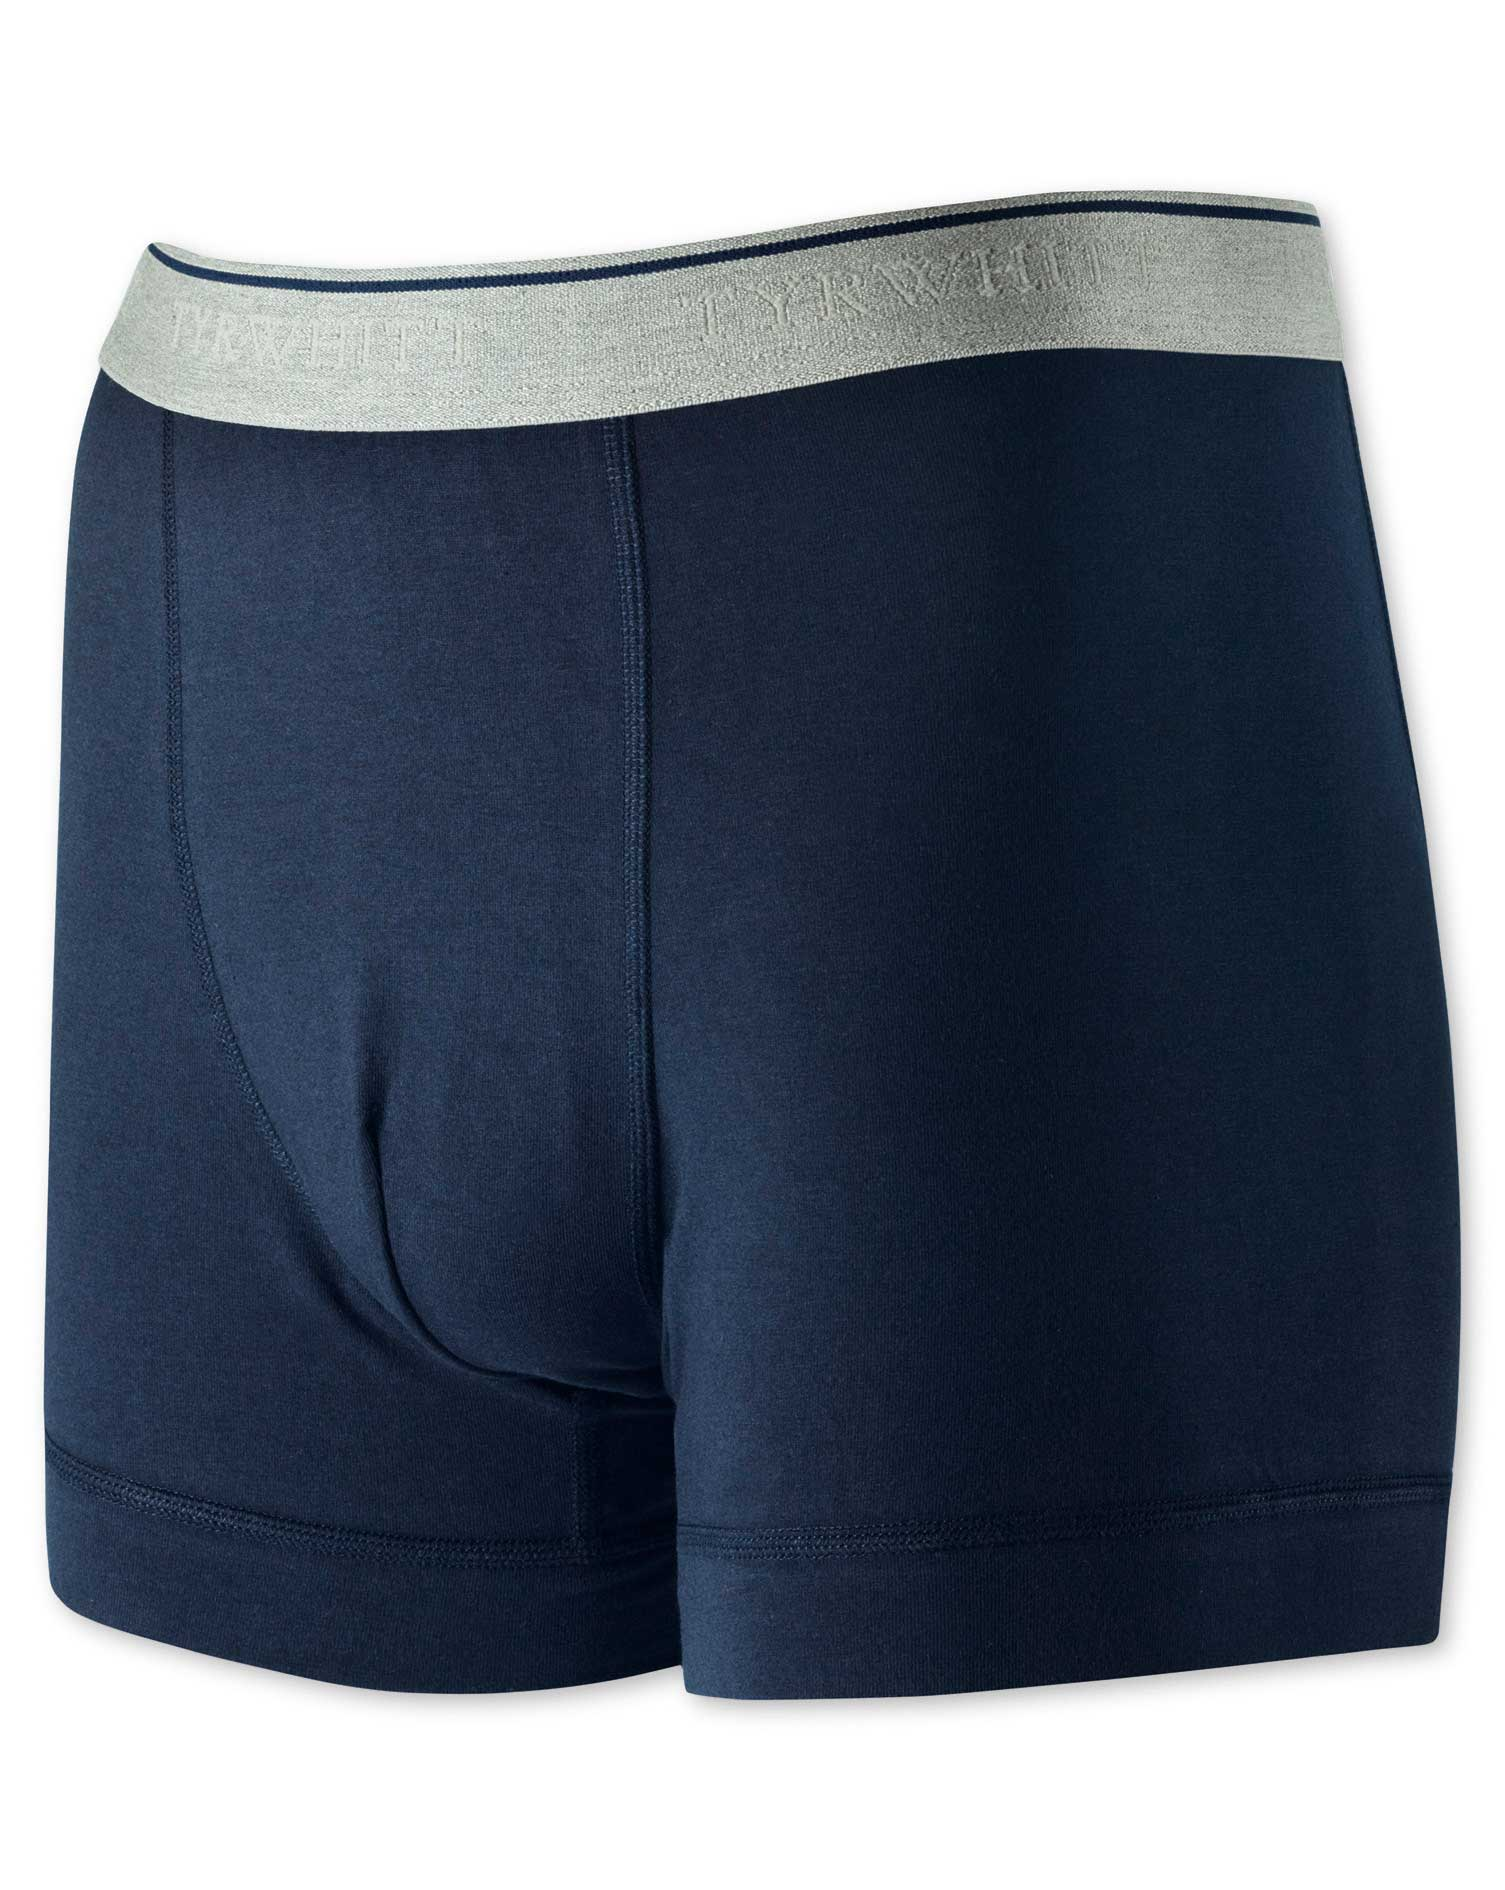 navy cotton stretch jersey trunks size small by charles tyrwhitt